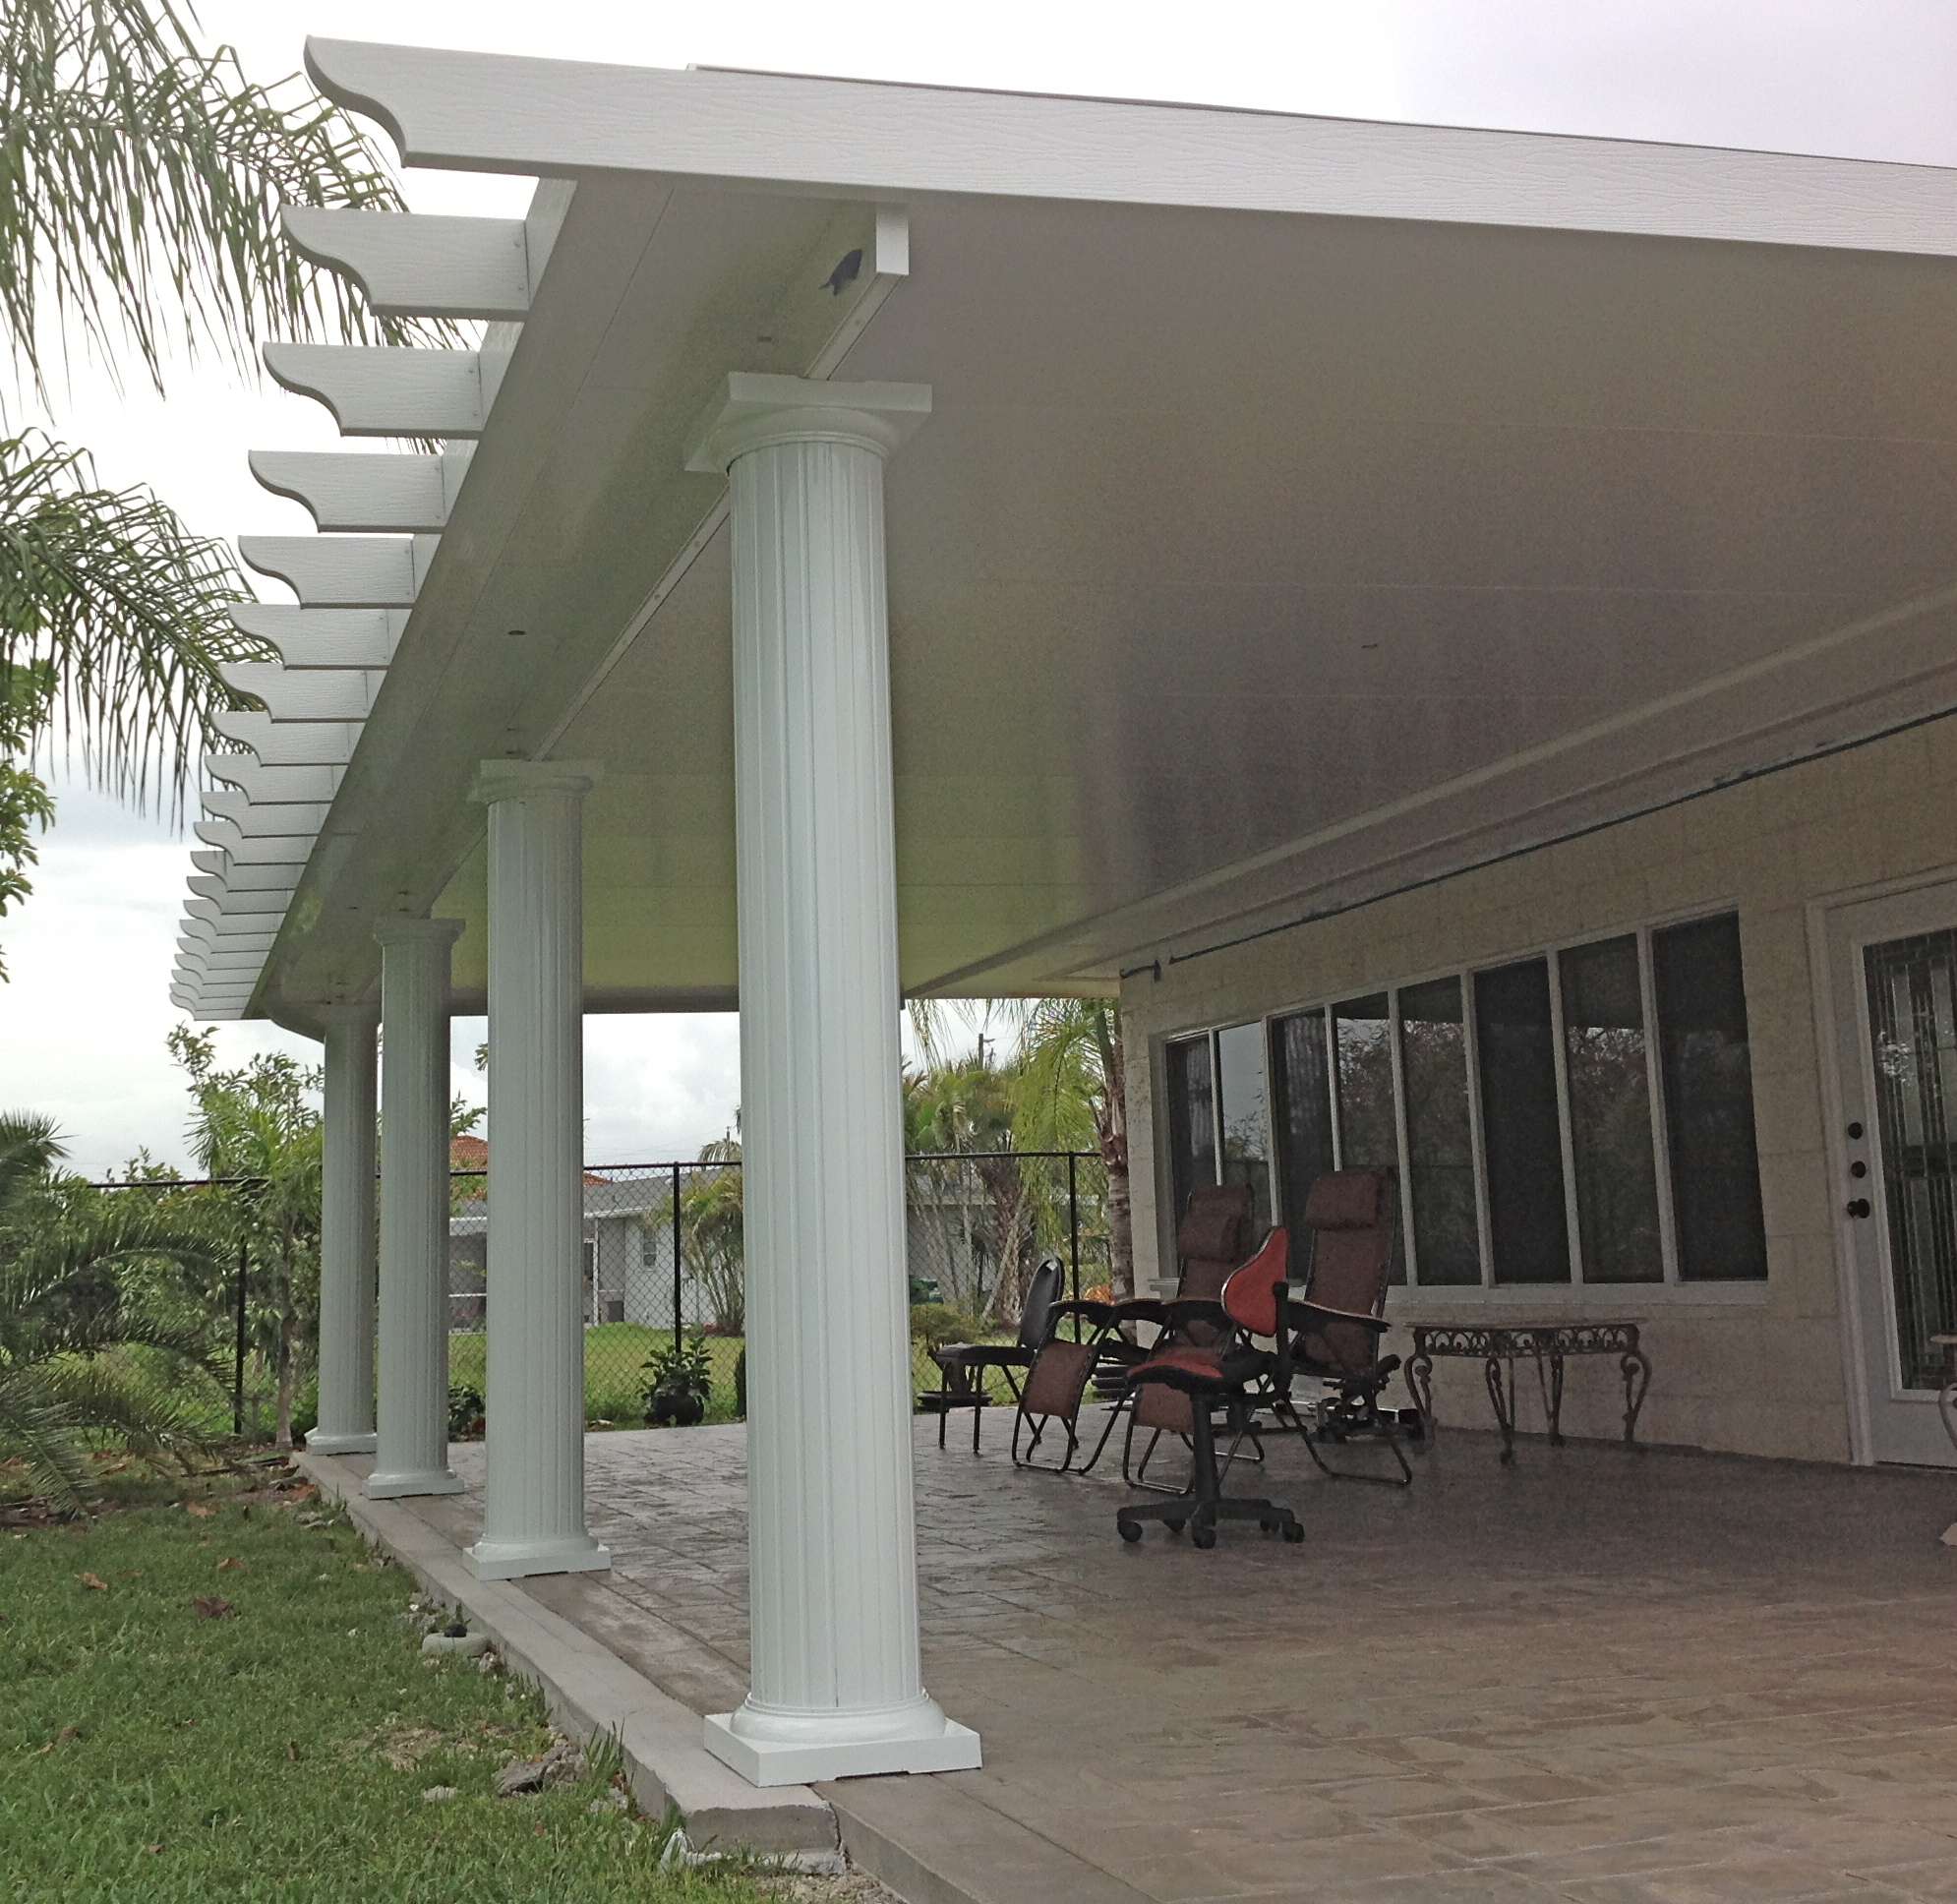 Insulated Patio Roofs In South Florida Feed Sales Increase